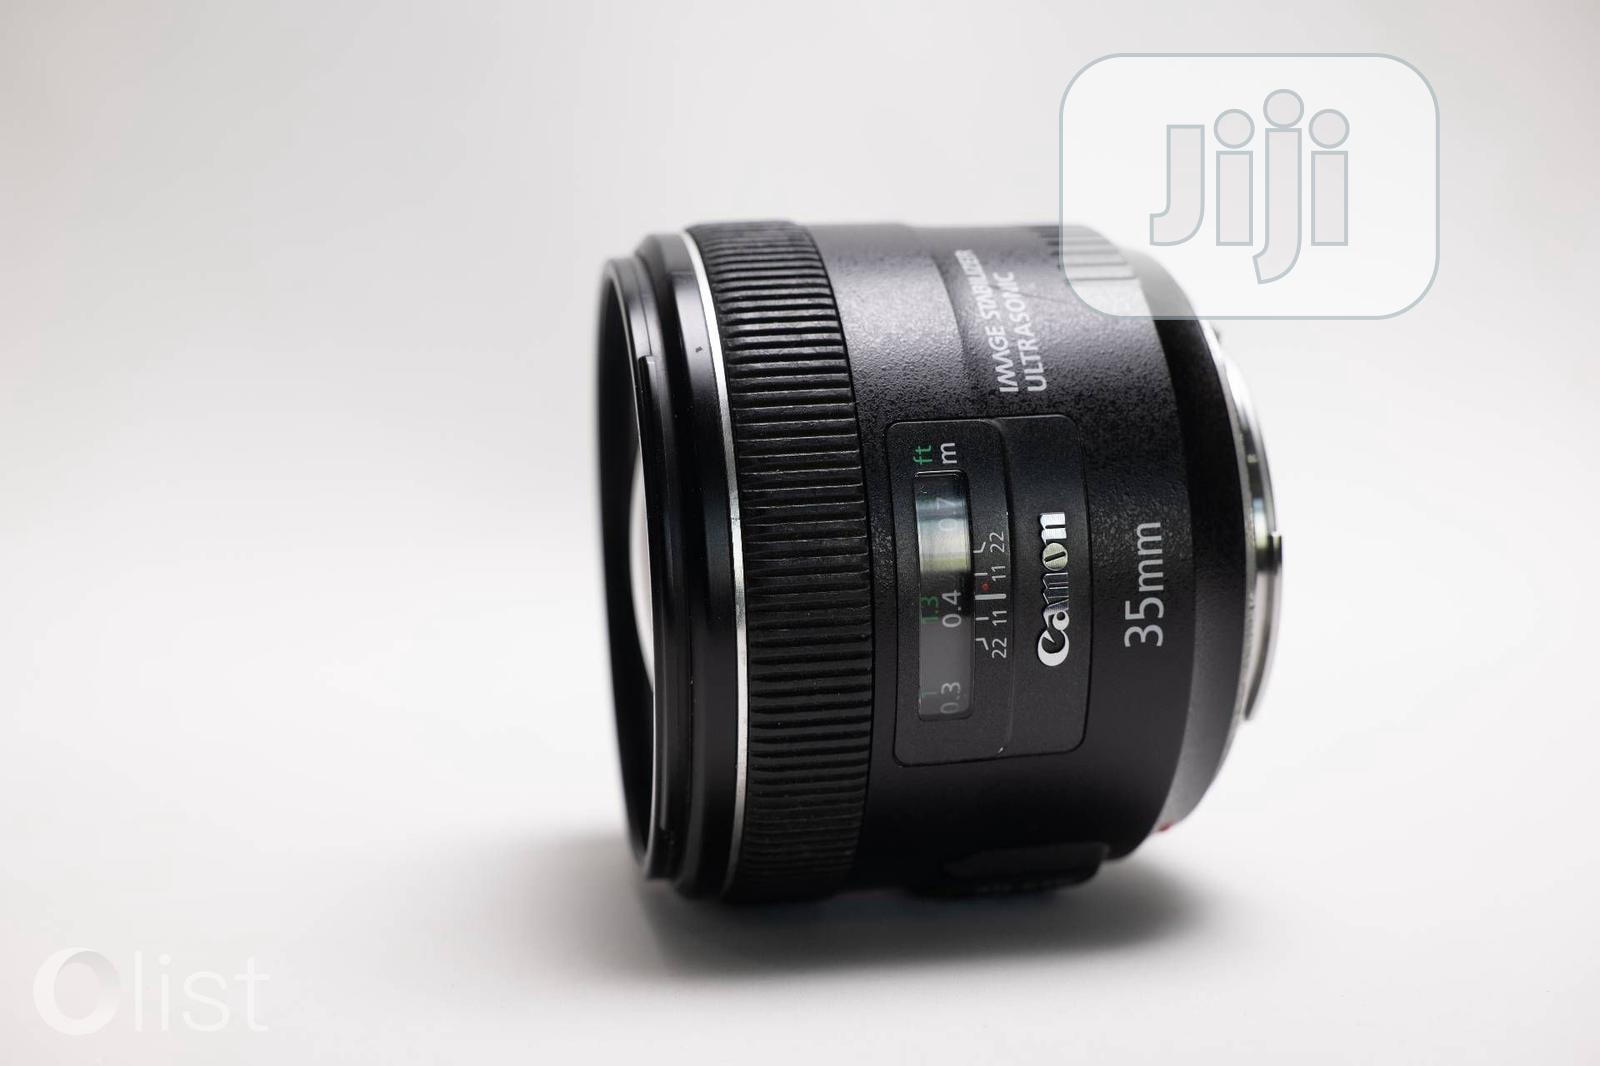 Canon EF 35mm F2 IS USM Used Full Frame Lens For SALE | Accessories & Supplies for Electronics for sale in Lekki Phase 2, Lagos State, Nigeria